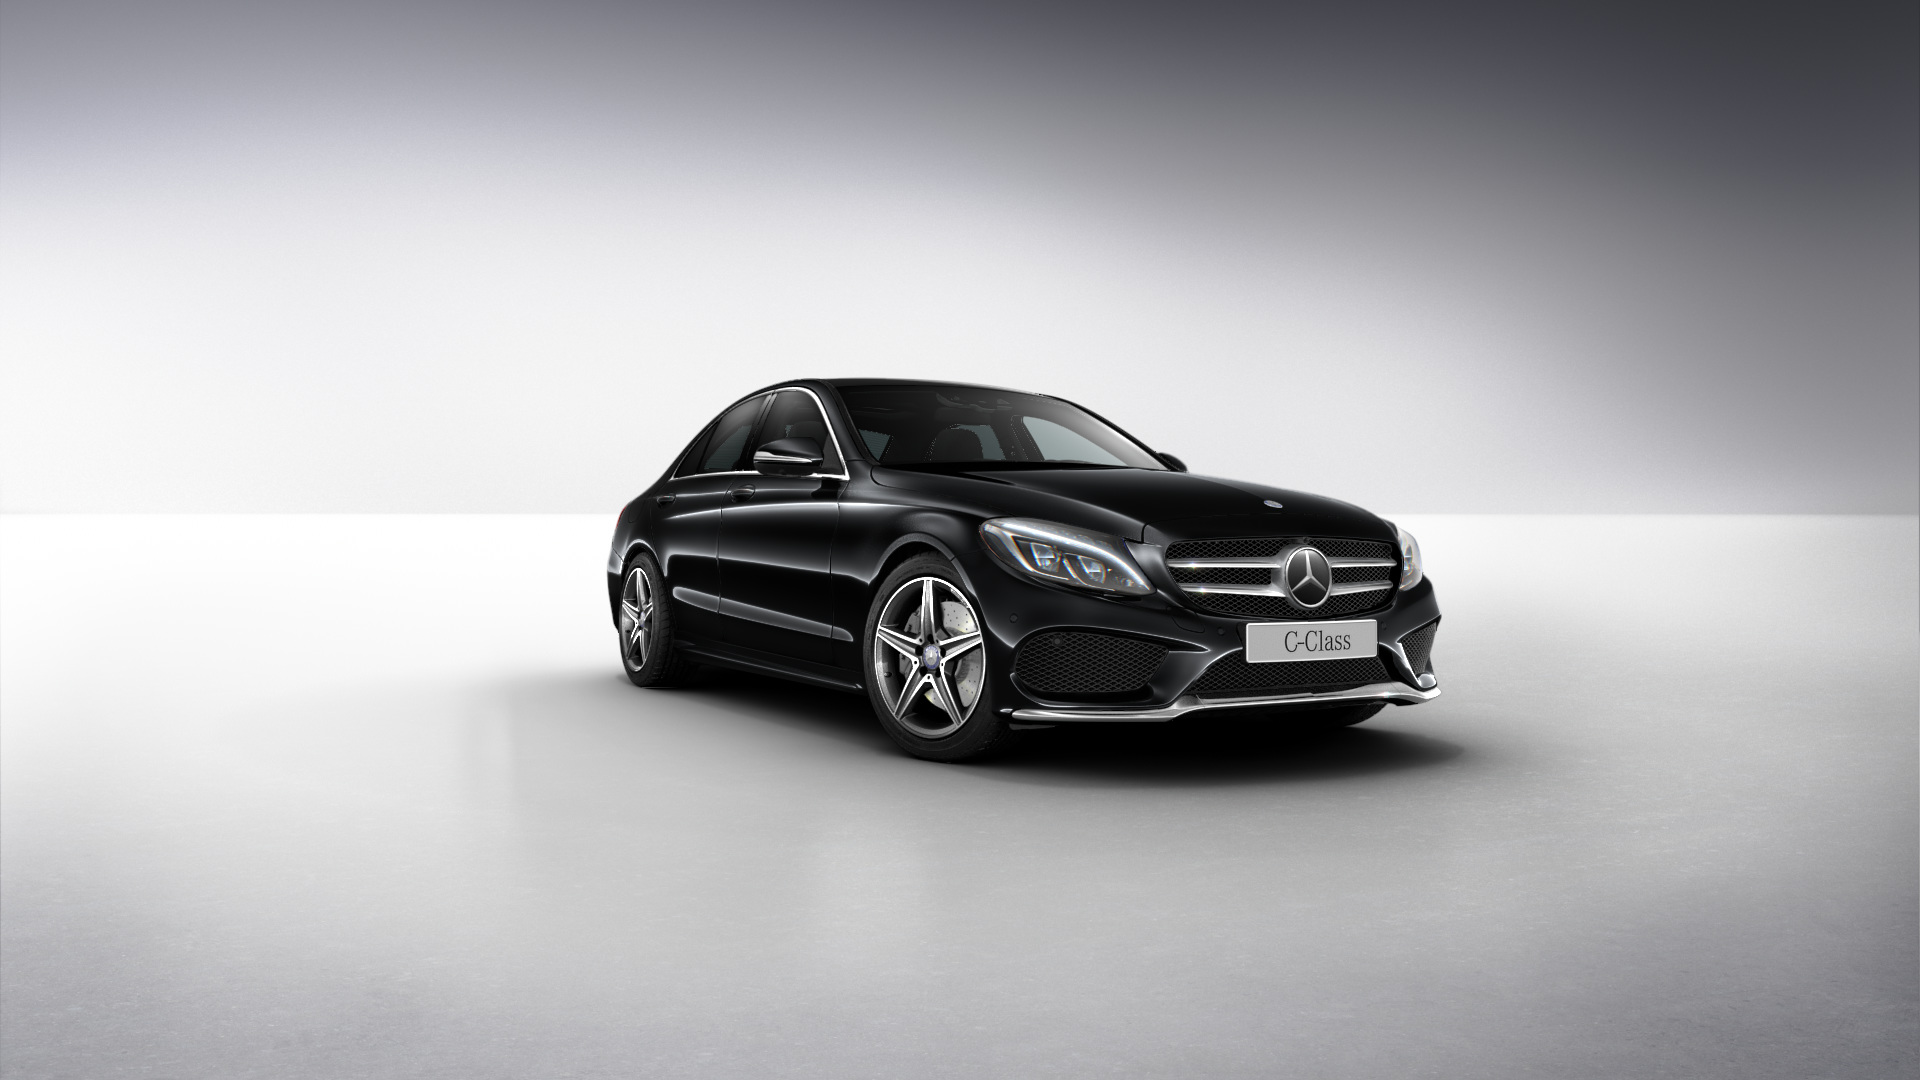 new mercedes-benz amg vehicles in halifax | o'regan's mercedes-benz